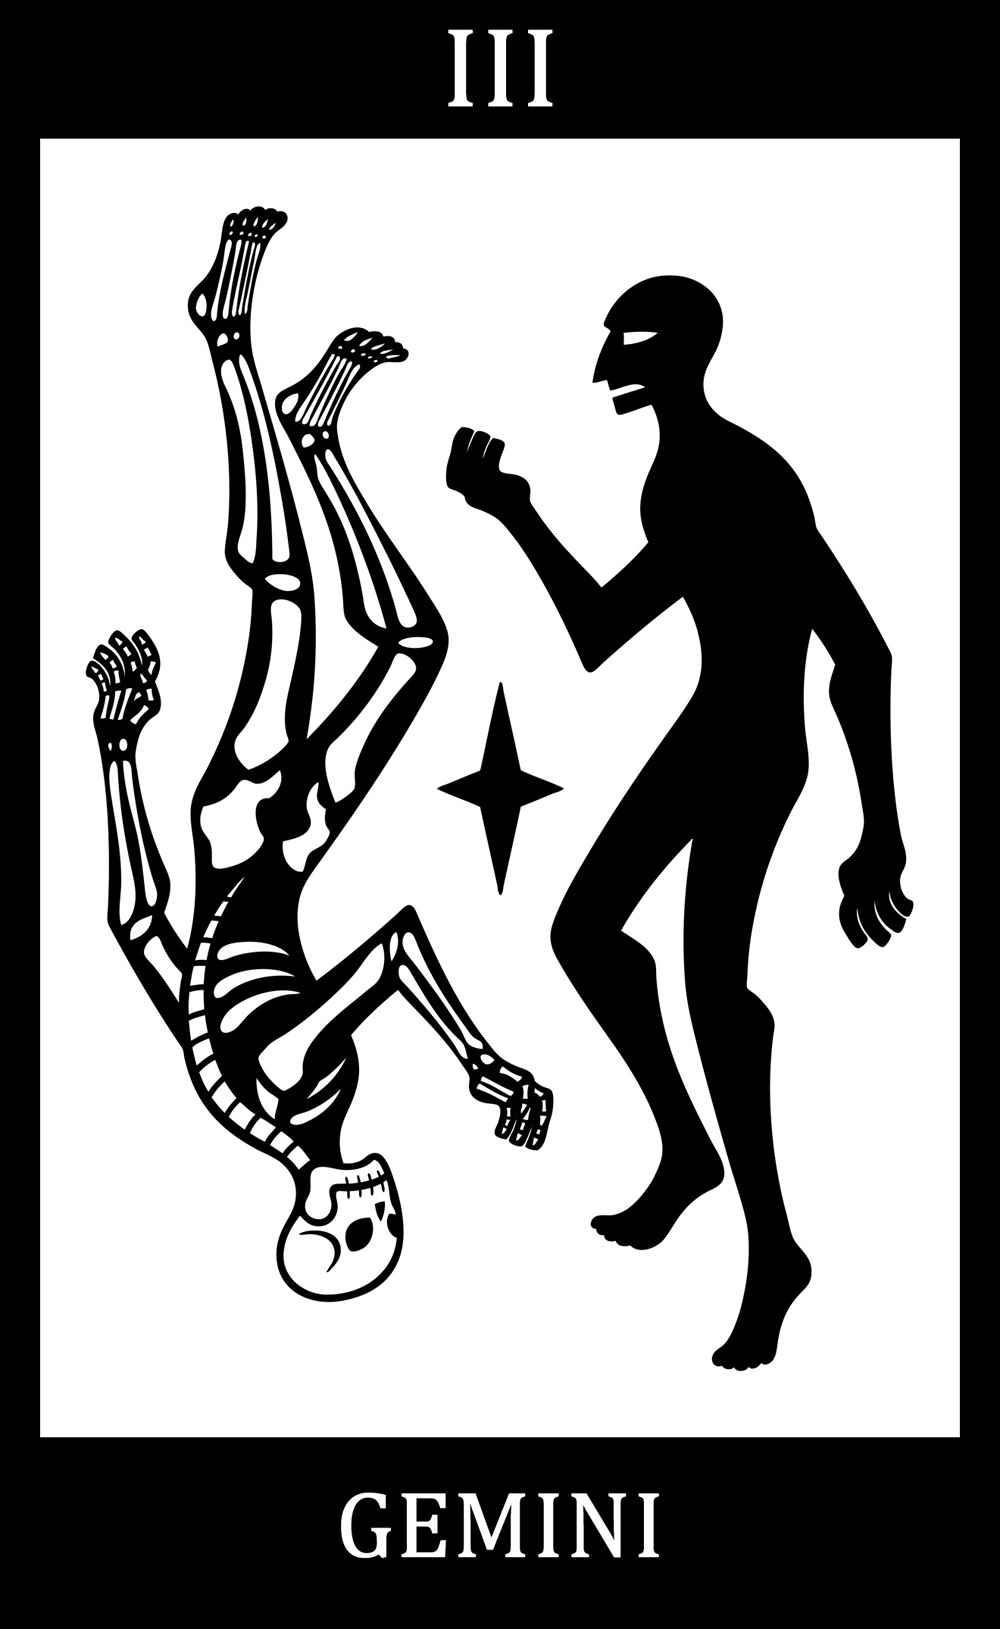 03 - Gemini - SCP-1007 - Mr. Life and Mr. Death